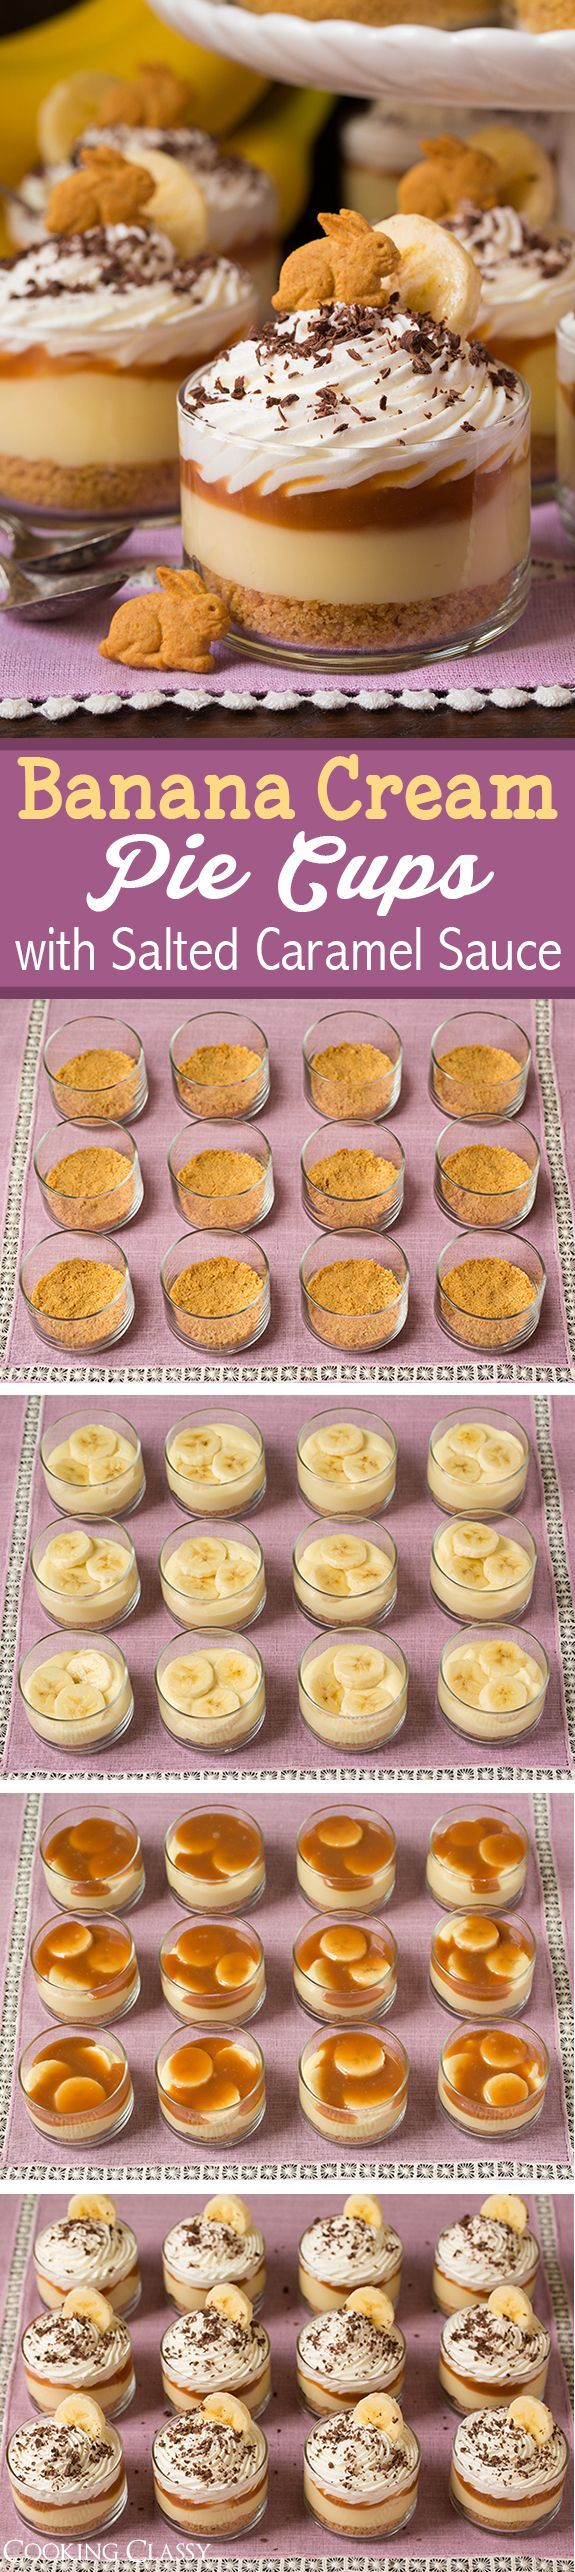 Banana Cream Pie Cups with Salted Caramel Sauce Cooking Classy